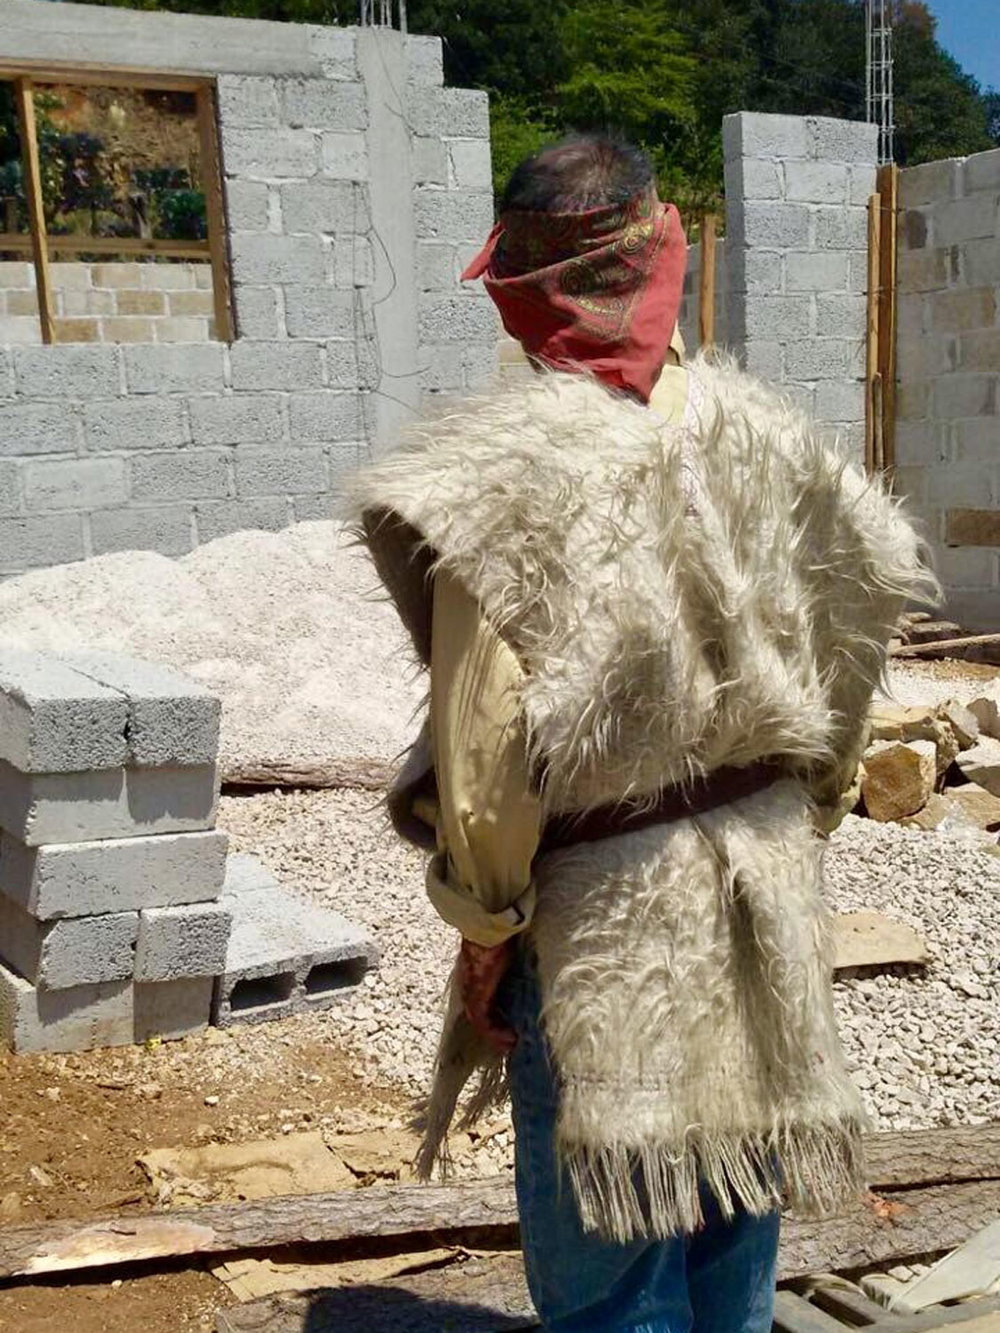 The Tzotzil man, building his house, wears white wool vest which indicates his important social status. Others wear black vests.